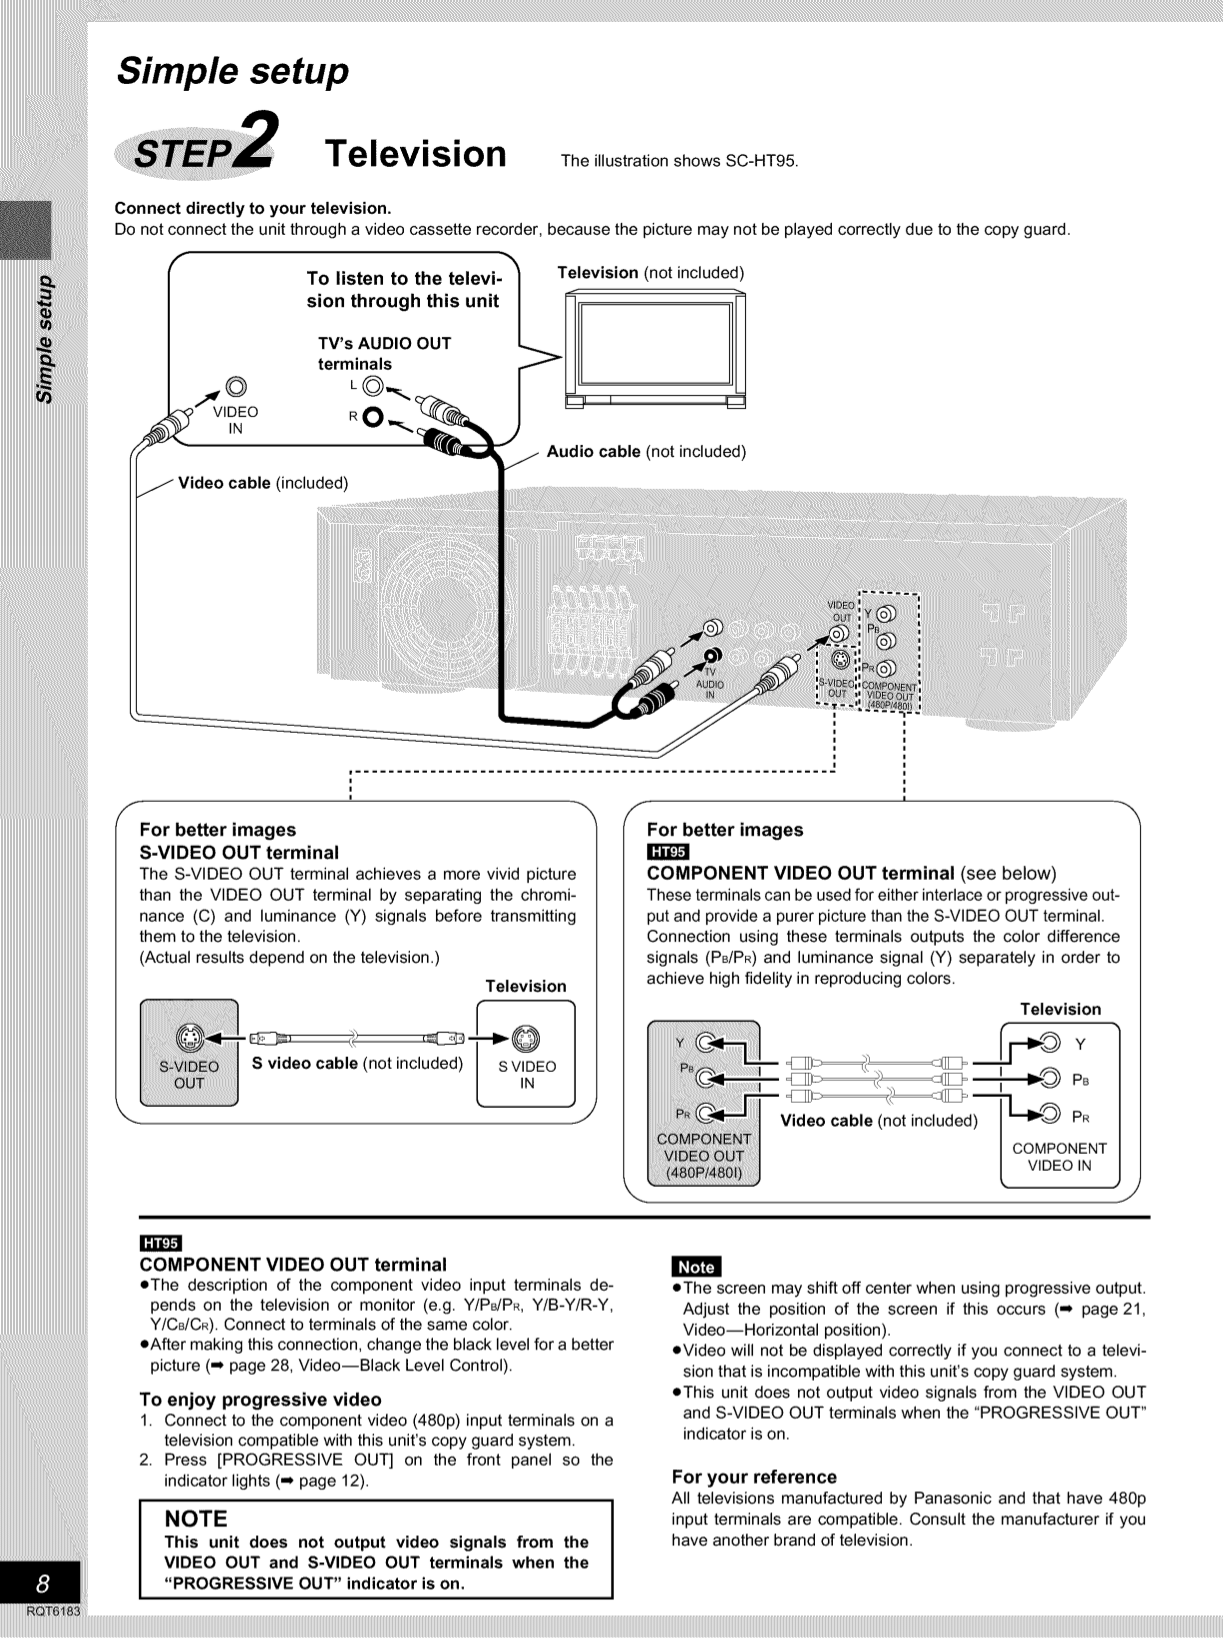 pdf manual for panasonic home theater sa ht75 rh umlib com panasonic sa-ht75 user manual panasonic sa-ht75 service manual